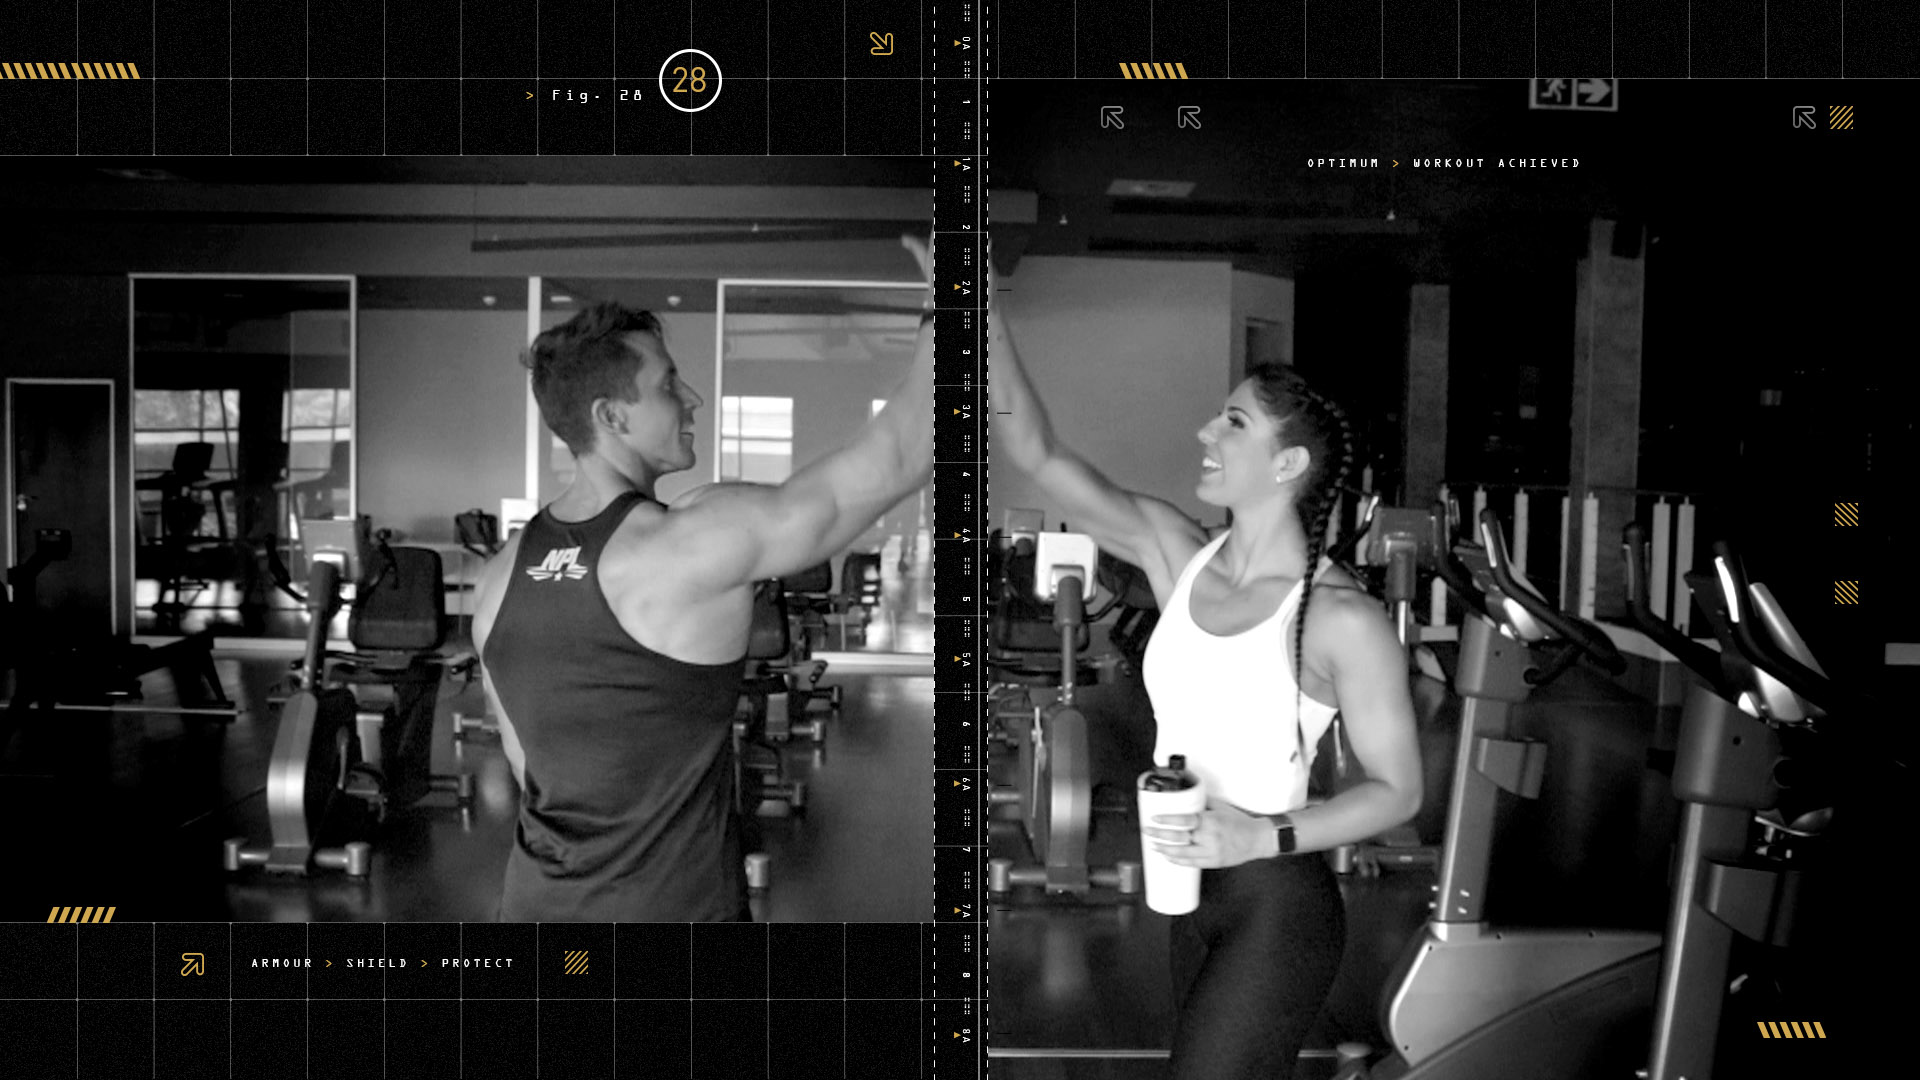 Male and female athletes high-five after a workout